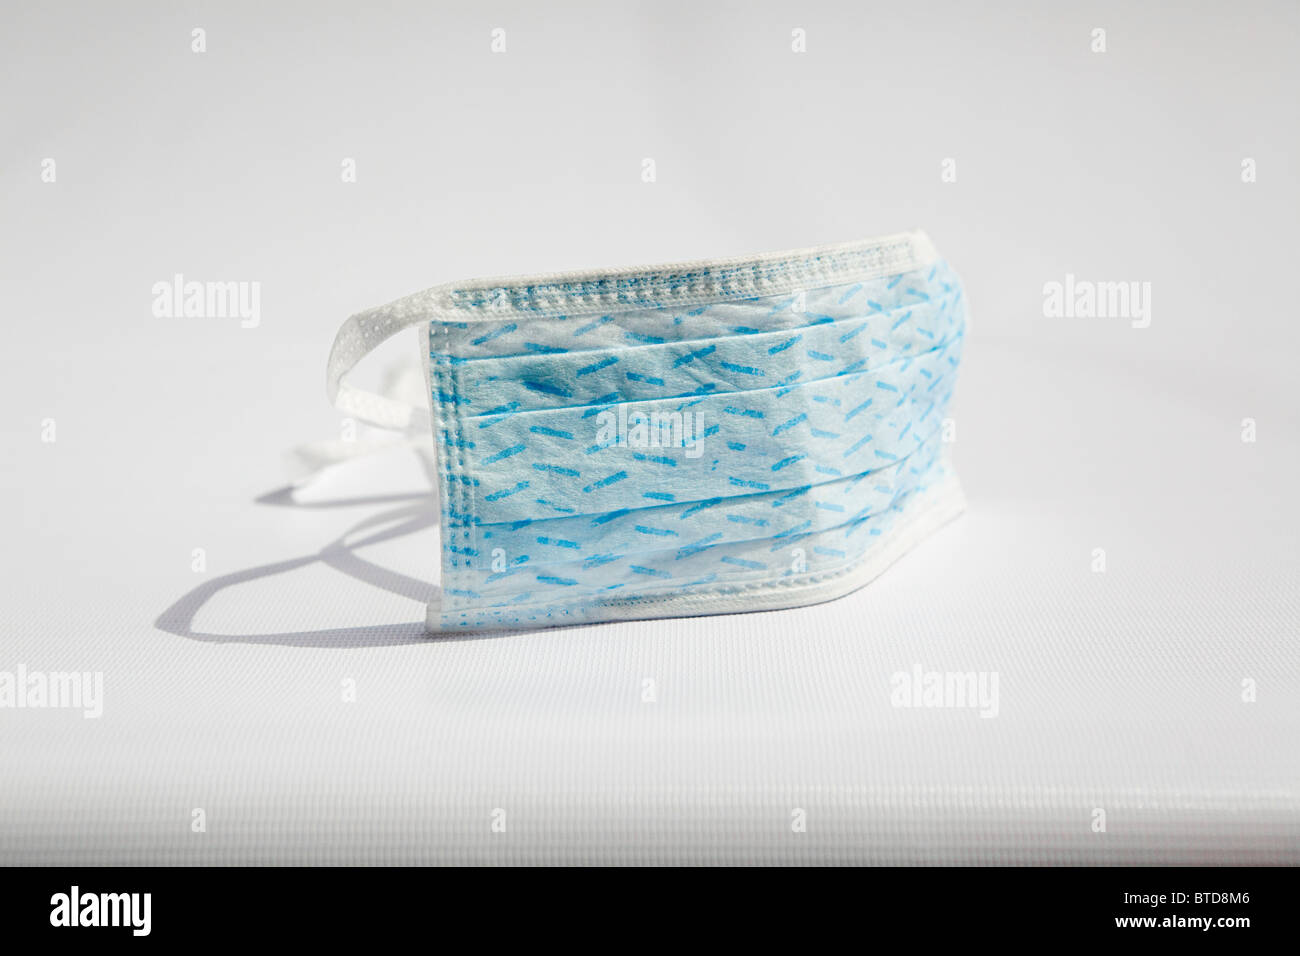 Surgical mask - Stock Image